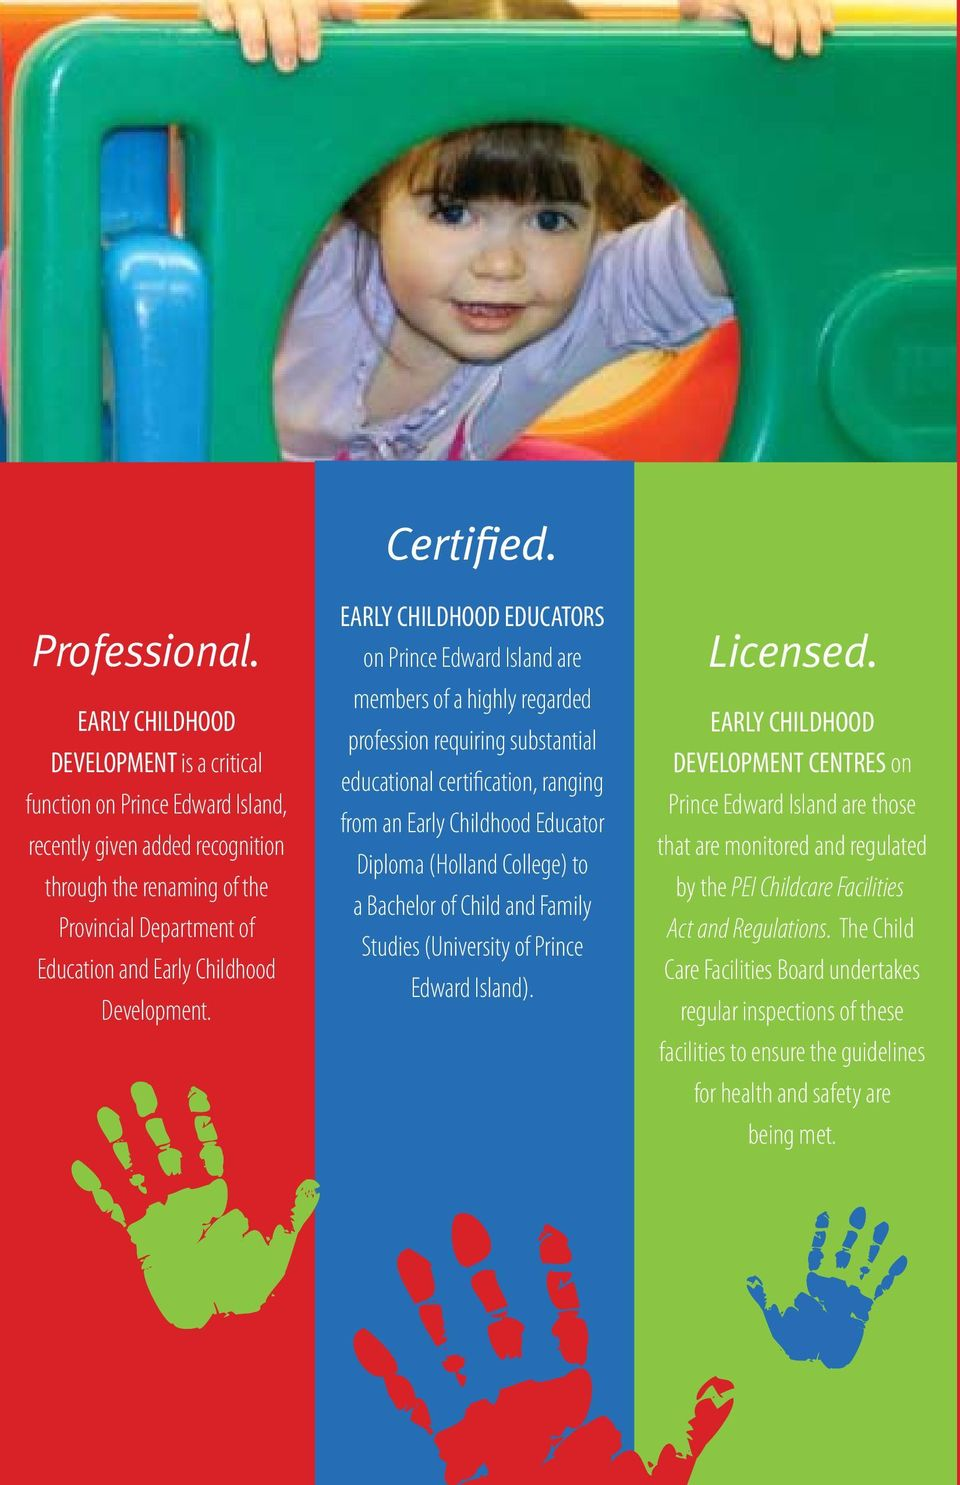 EARLY CHILDHOOD EDUCATORS on Prince Edward Island are members of a highly regarded profession requiring substantial educational certification, ranging from an Early Childhood Educator Diploma